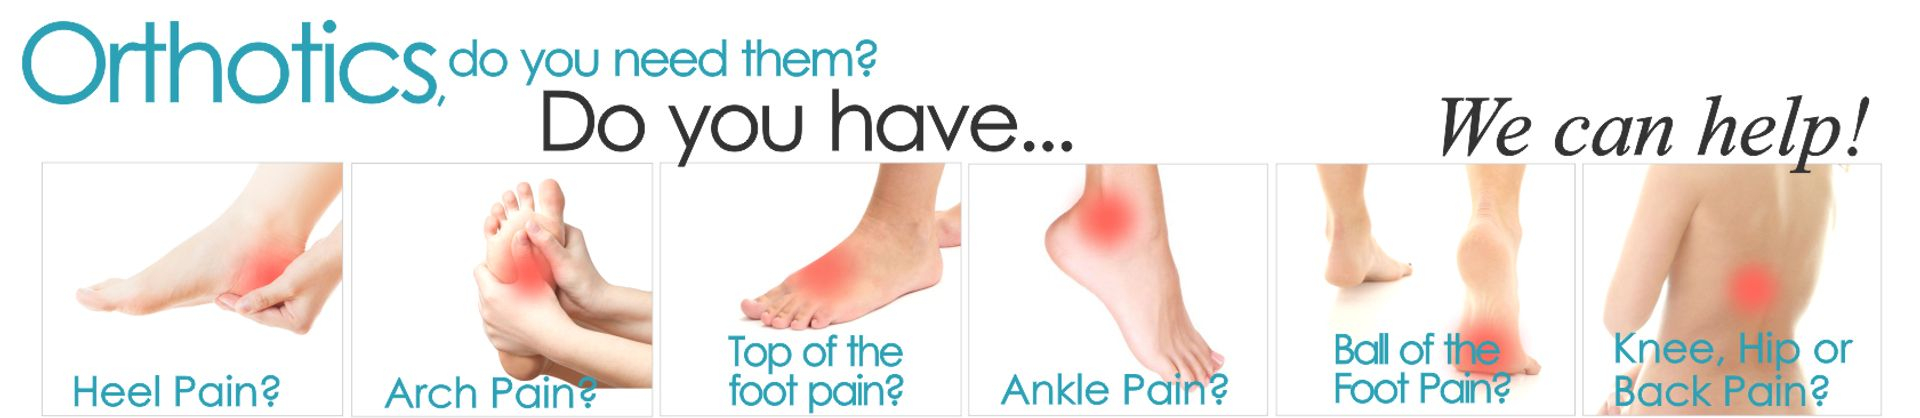 Advanced Foot & Orthotic Clinic offers a full array of chiropody services to help you maintain healthy feet.